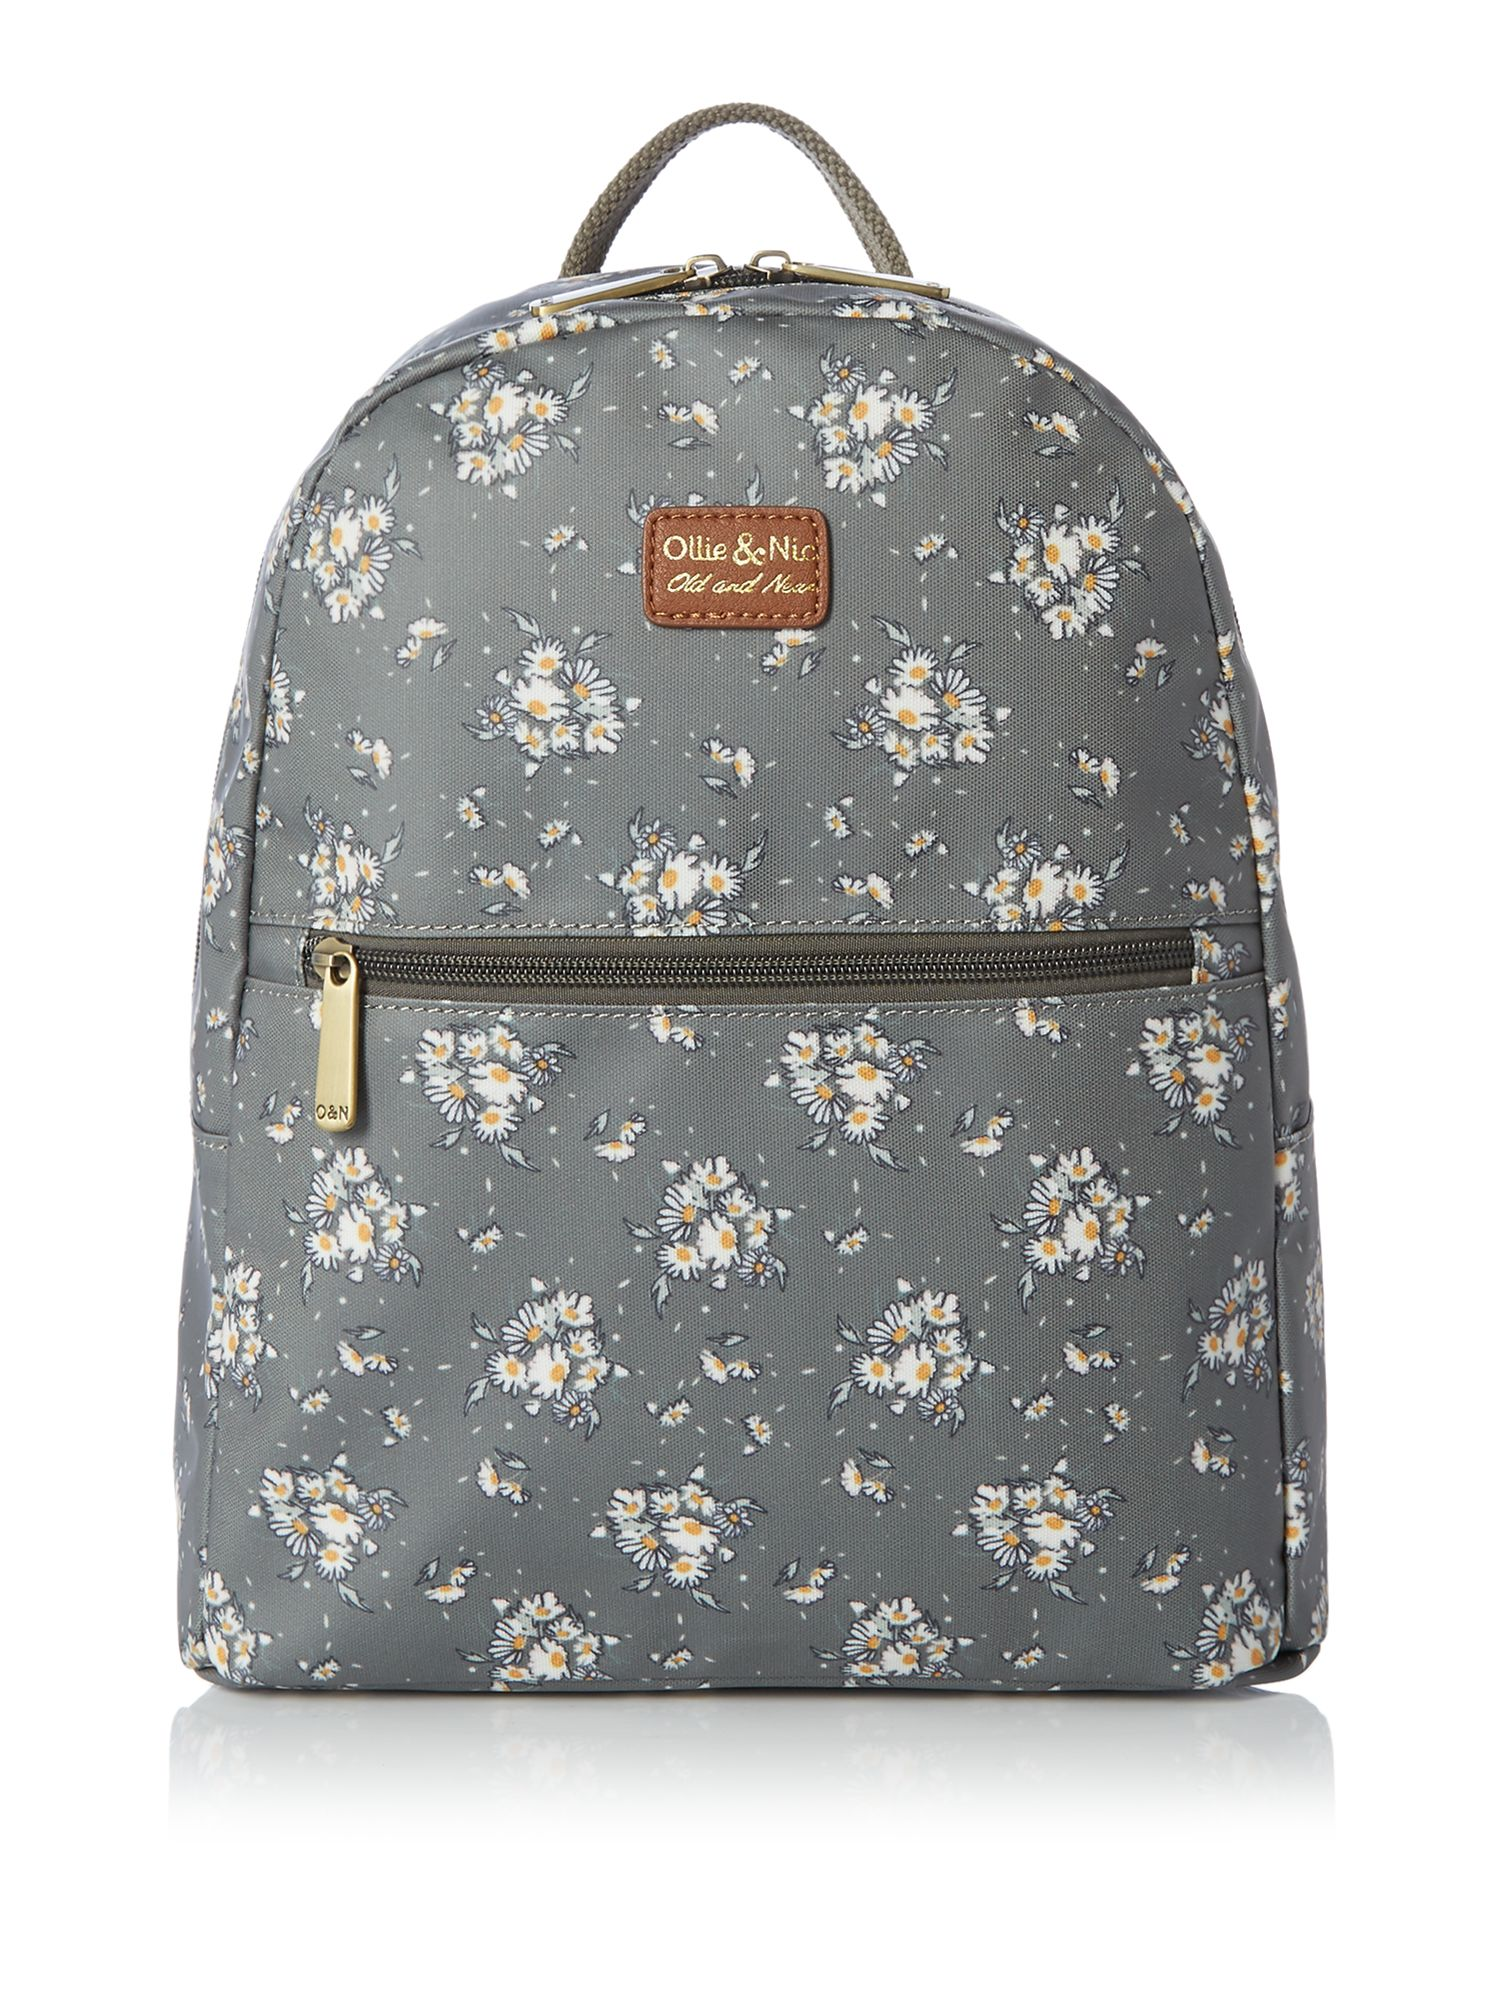 Ollie & Nic Ditsy backpack, Olive